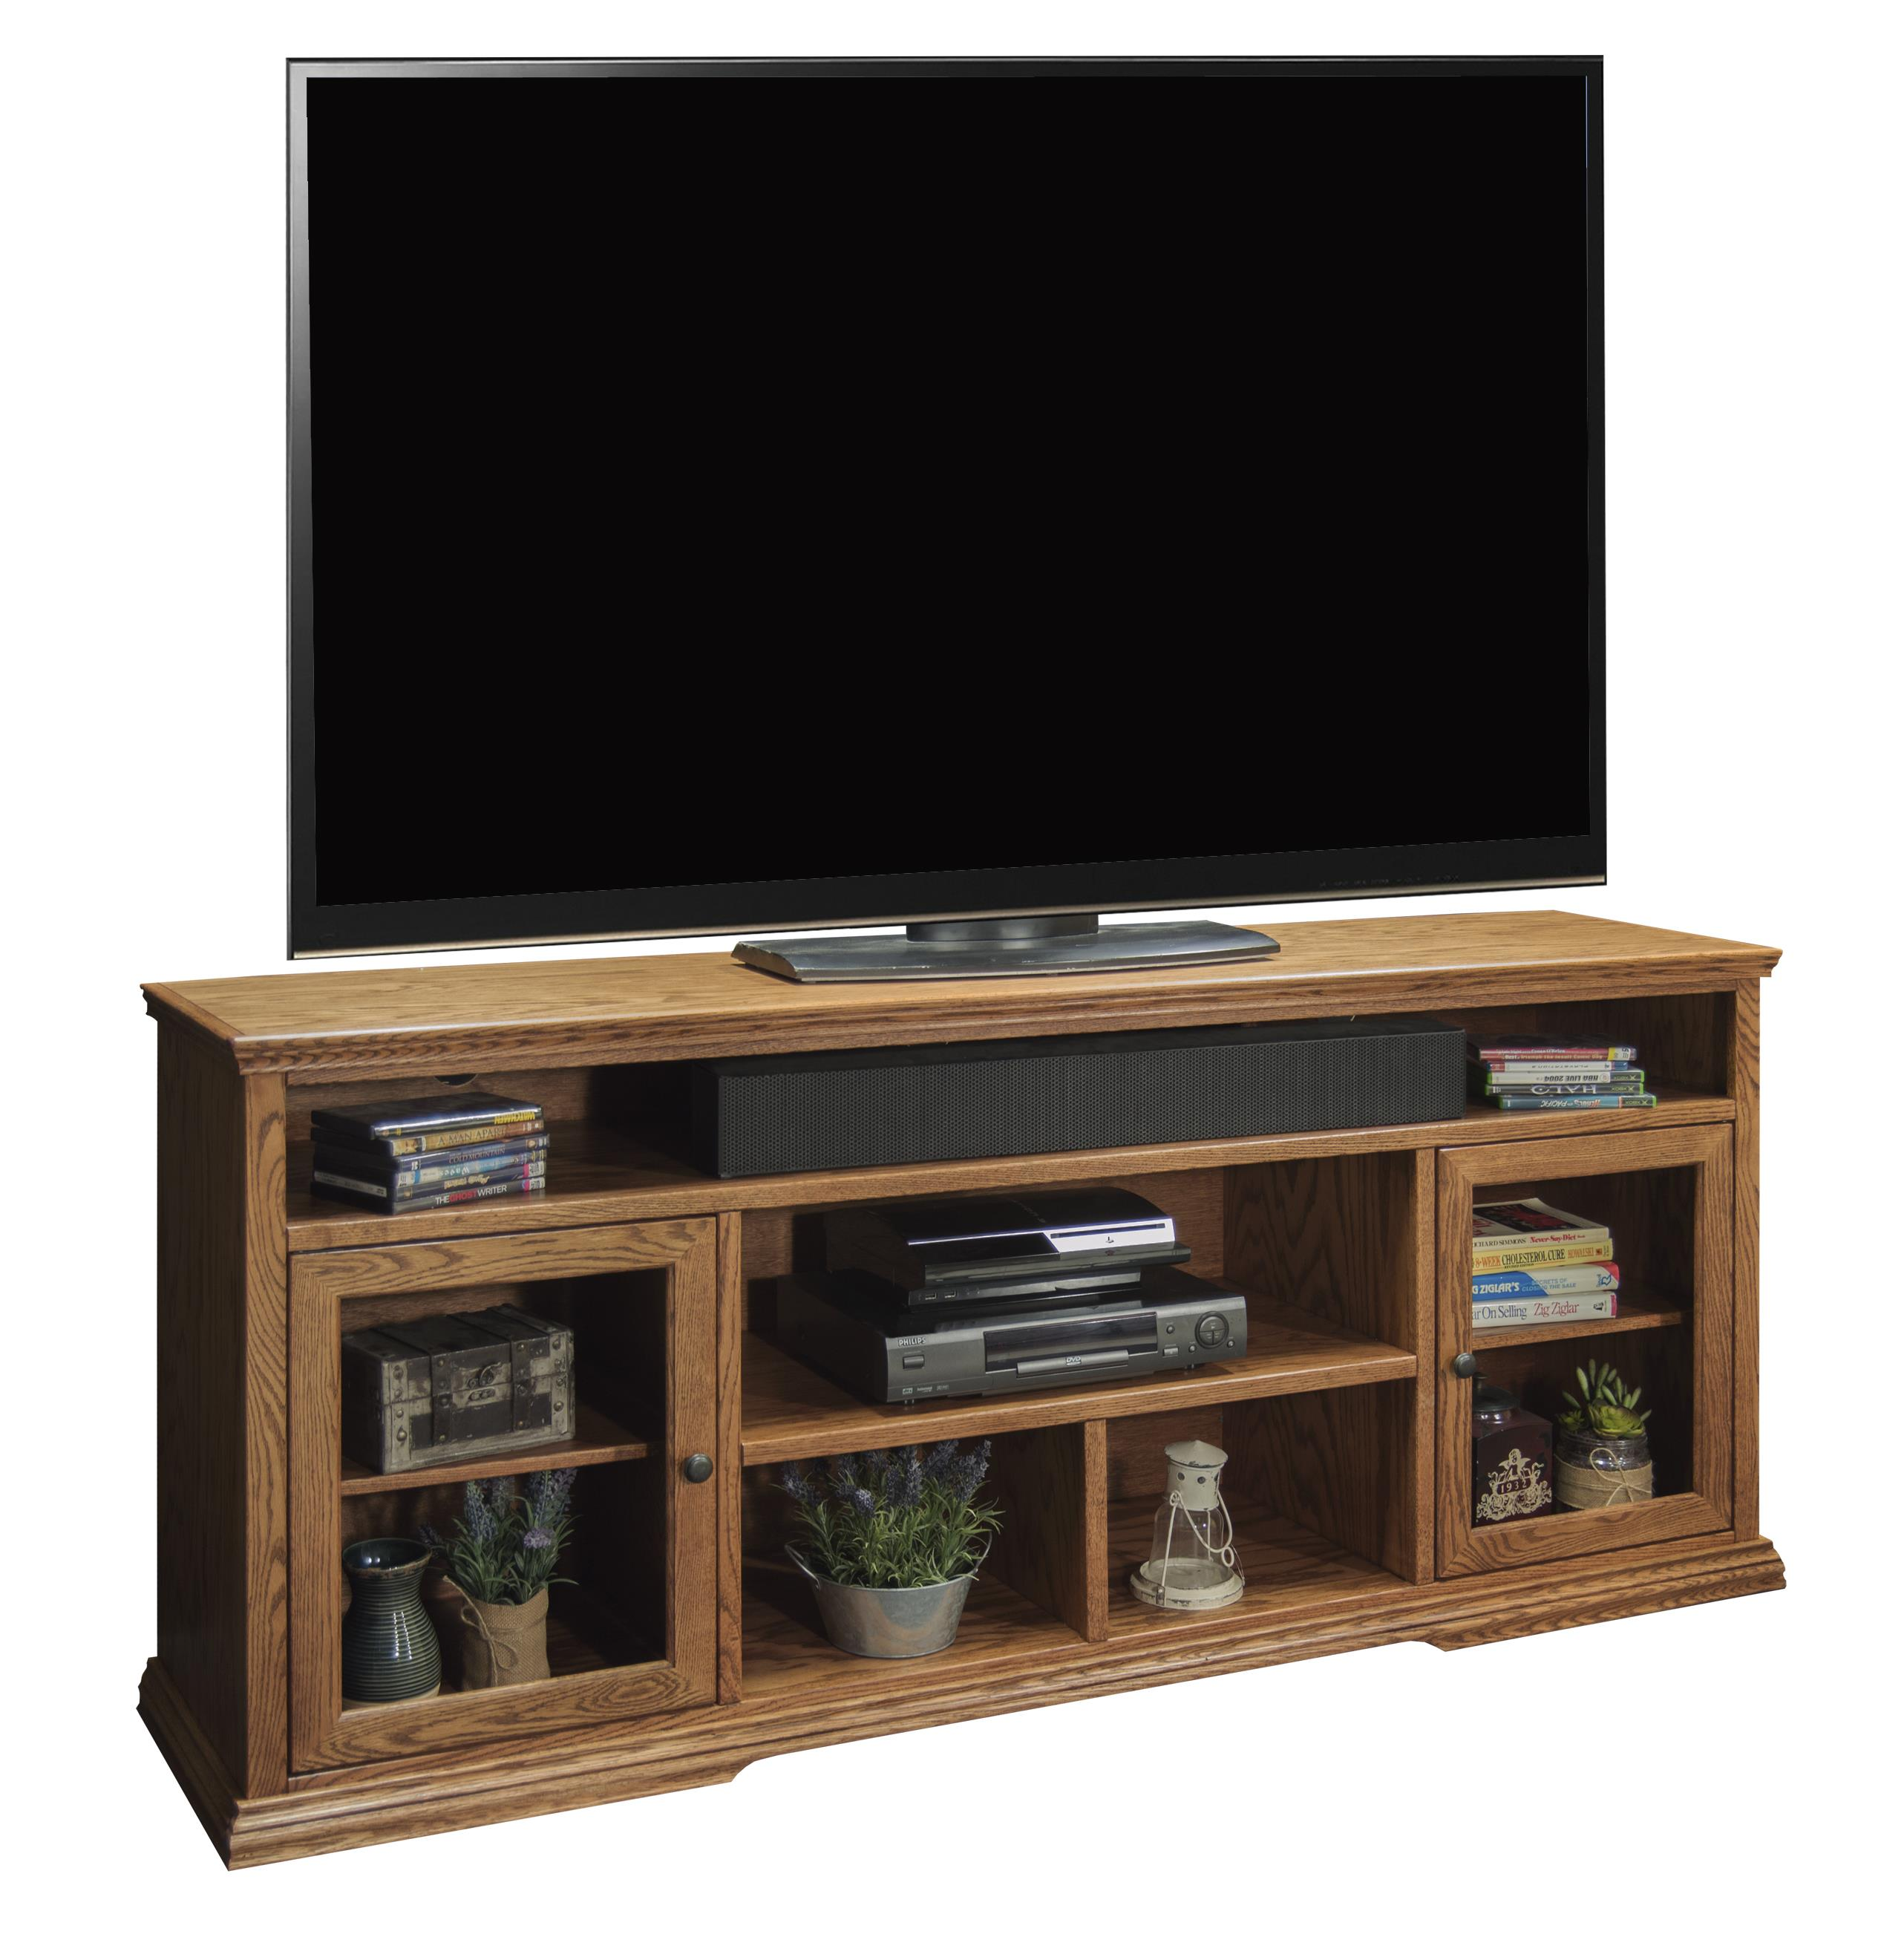 Legends Furniture Colonial Place 74-Inch Tall TV Cart - Item Number: CP1331.GDO